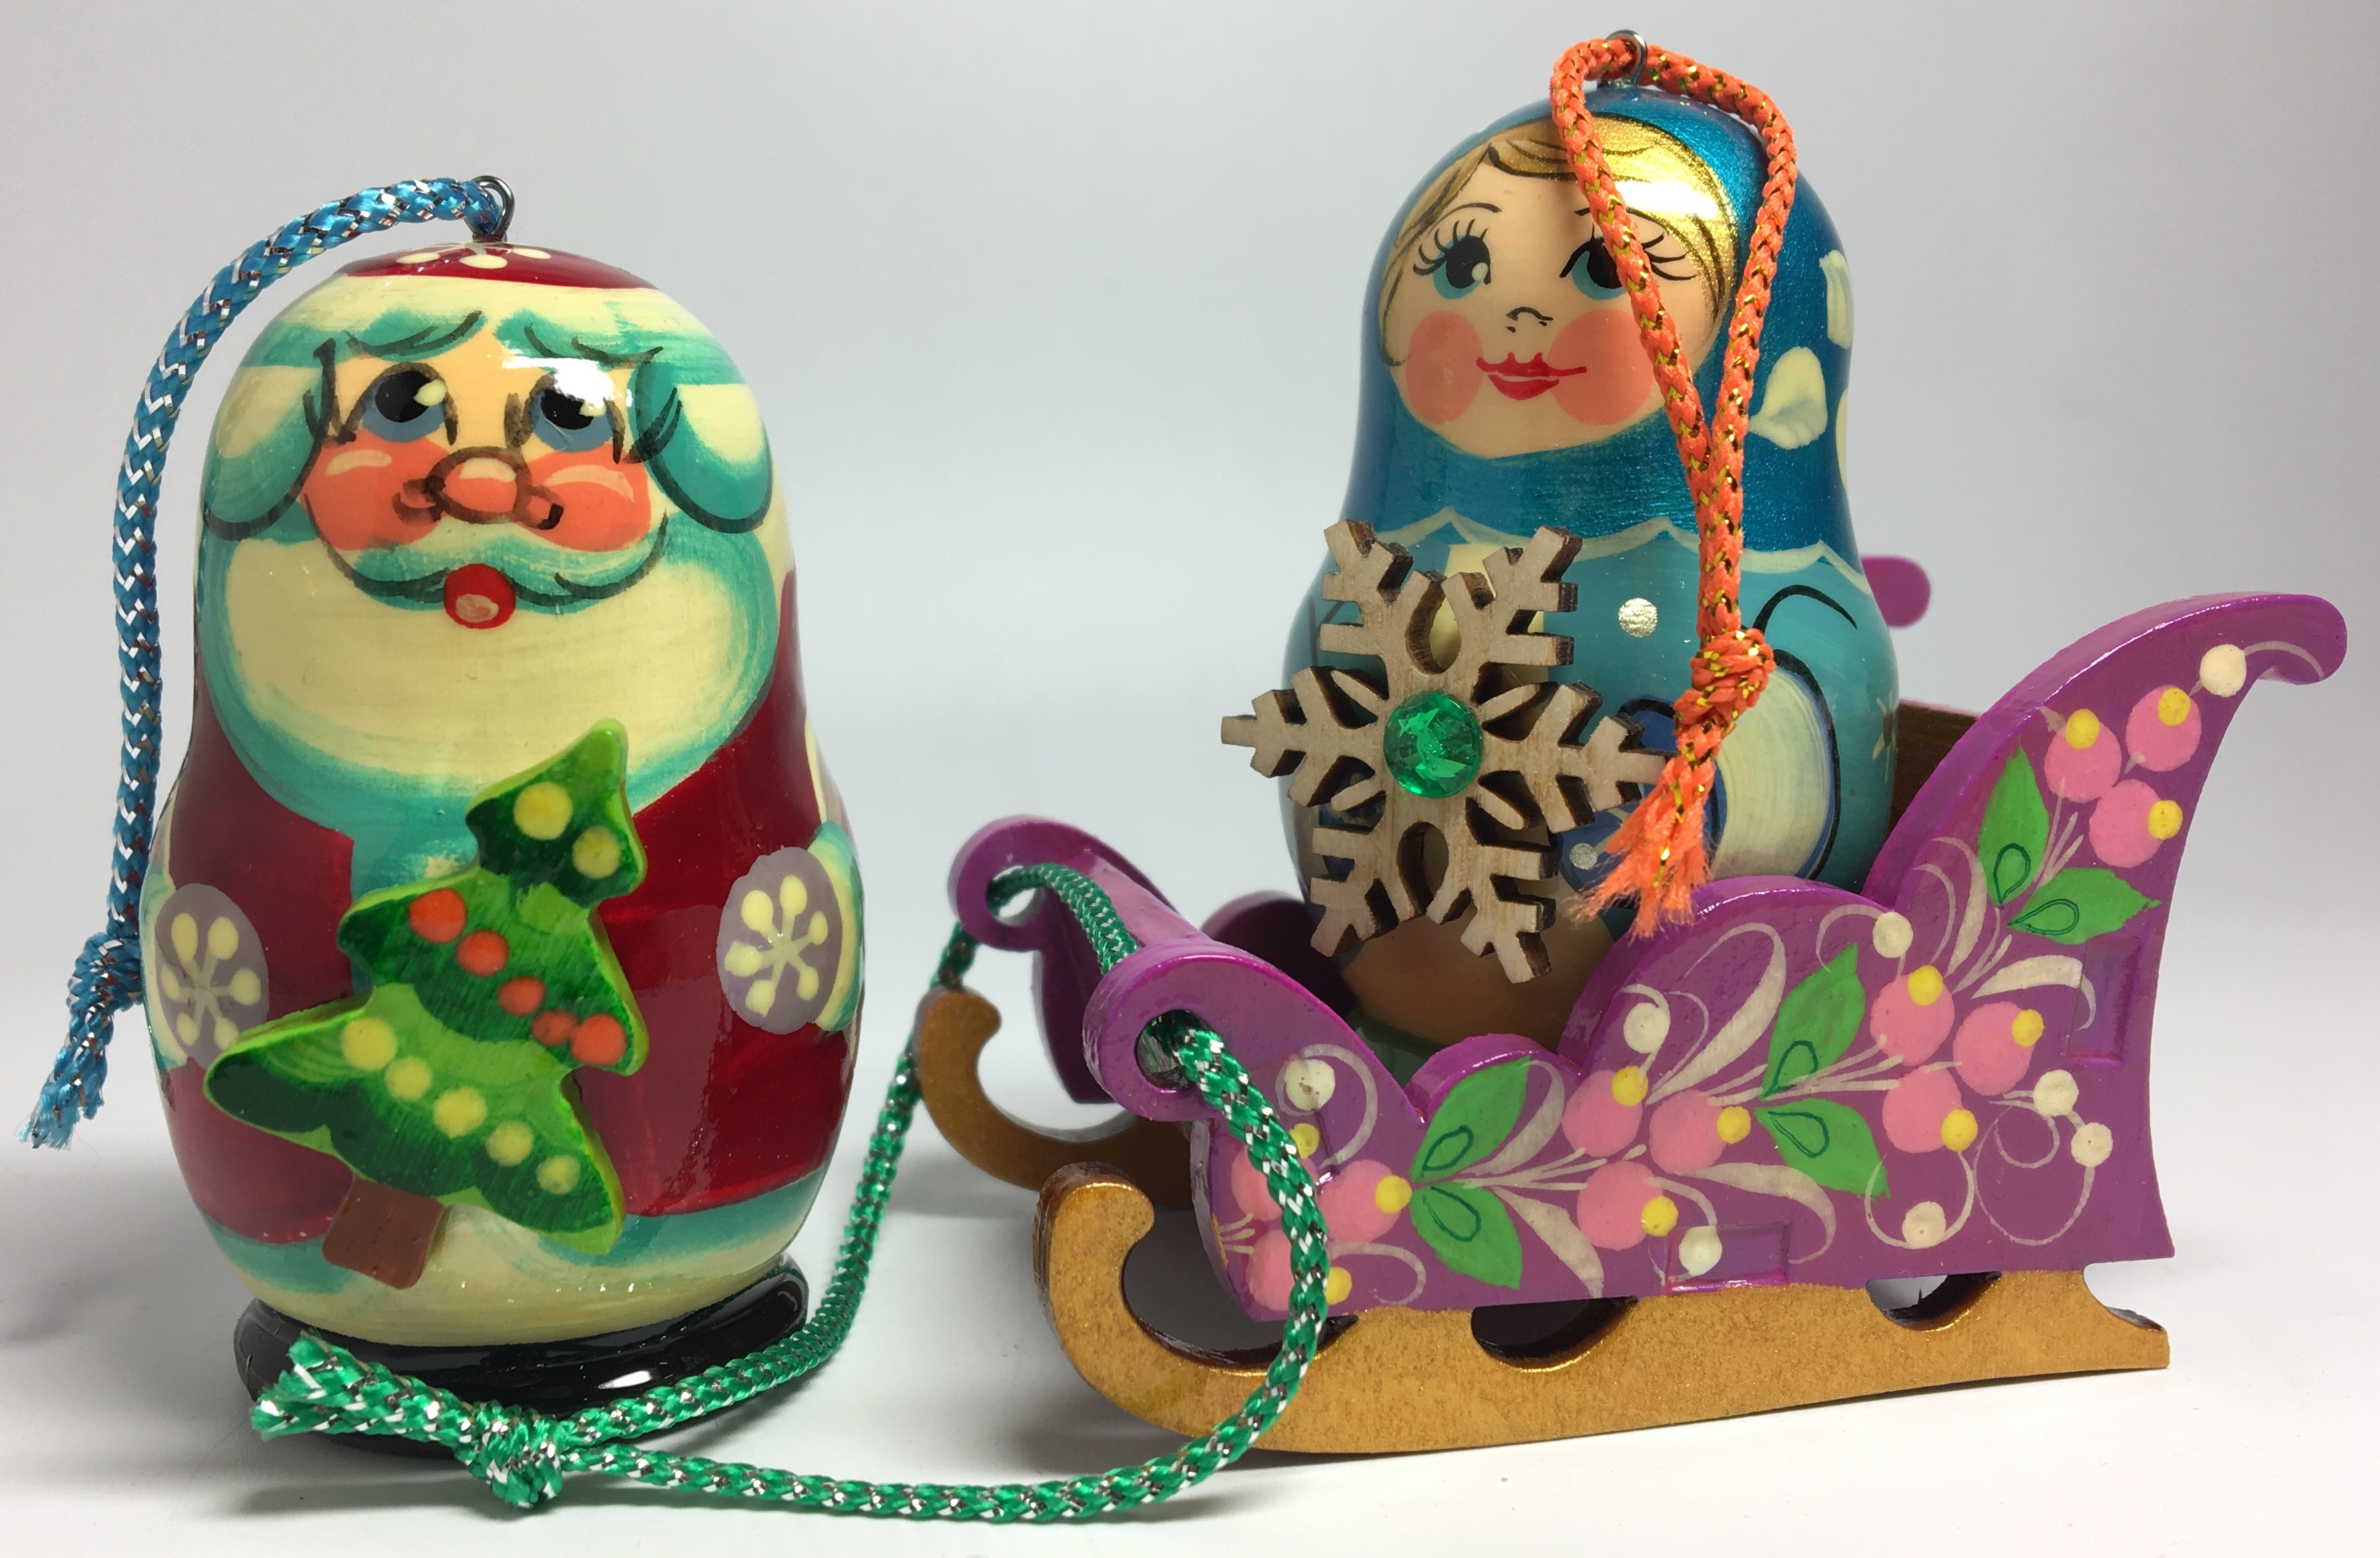 130x80 mm Santa Clause and Snowmaiden on Sladges hand Carved and Painted Christmas Tree Ornaments Set of 3 pcs in a Gift Box (by Andrey Studio)